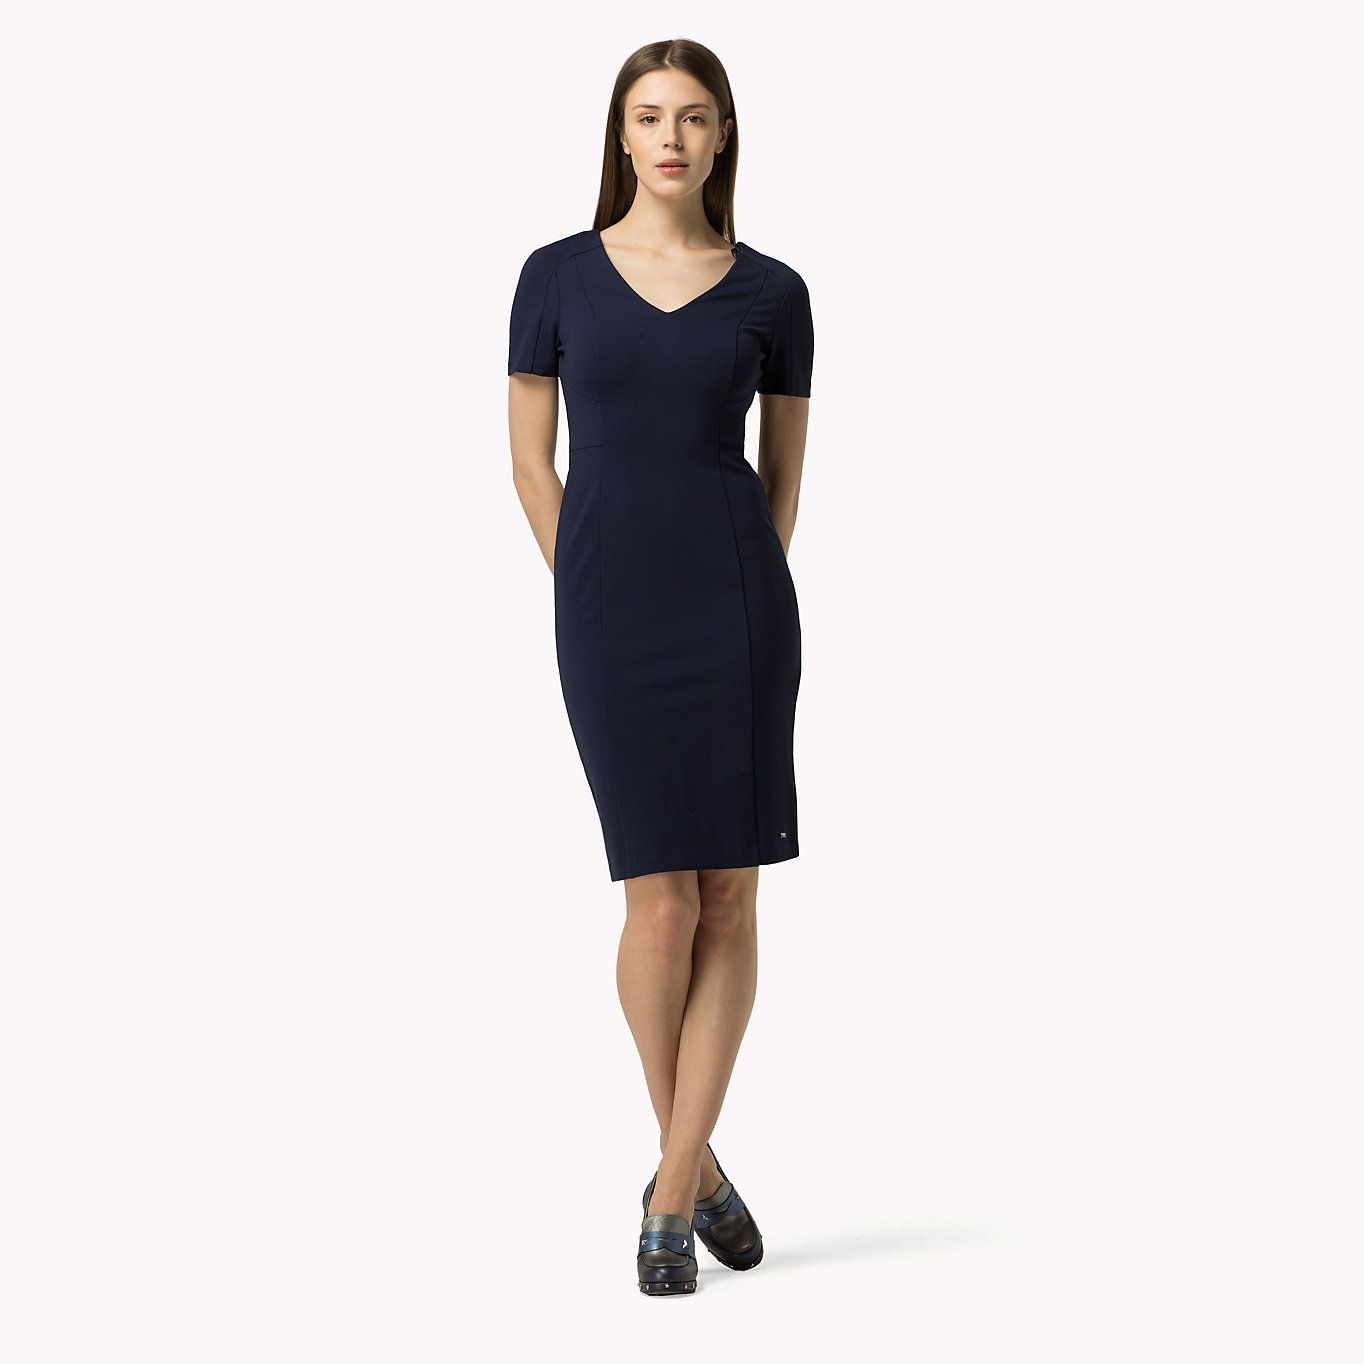 Image for Fitted Punto Milano Dress from TommySK  d3114979435